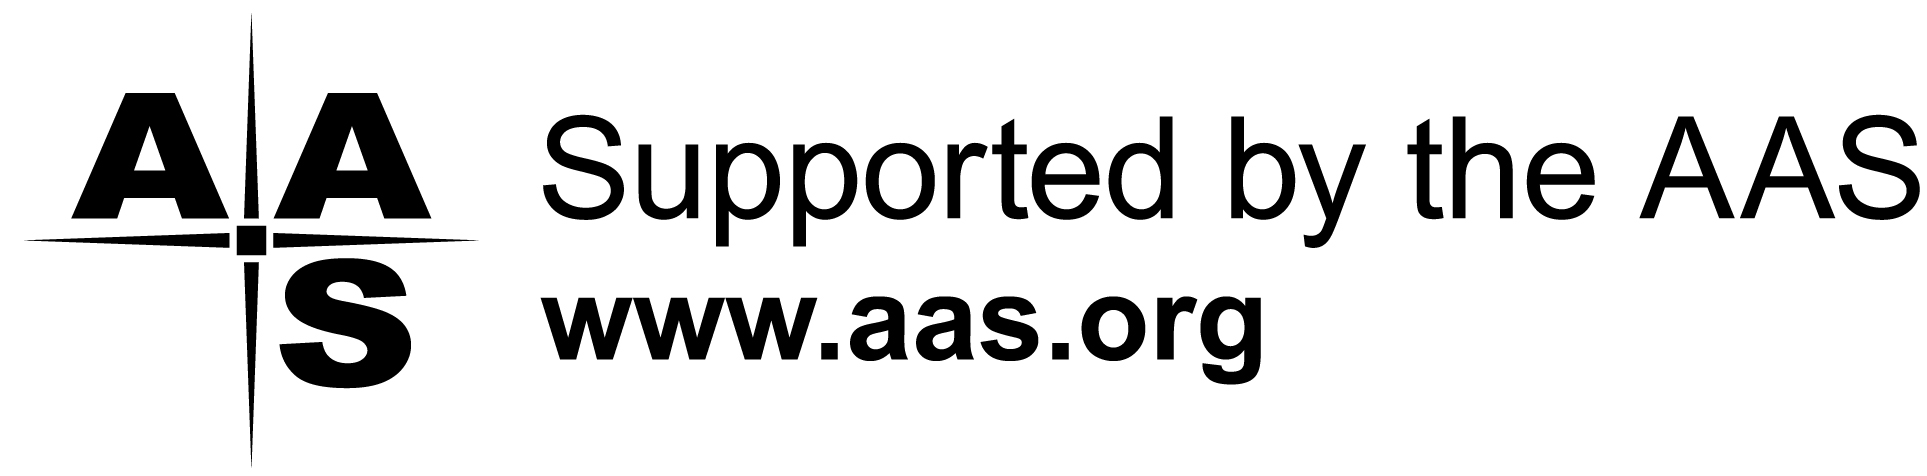 Supported by the AAS